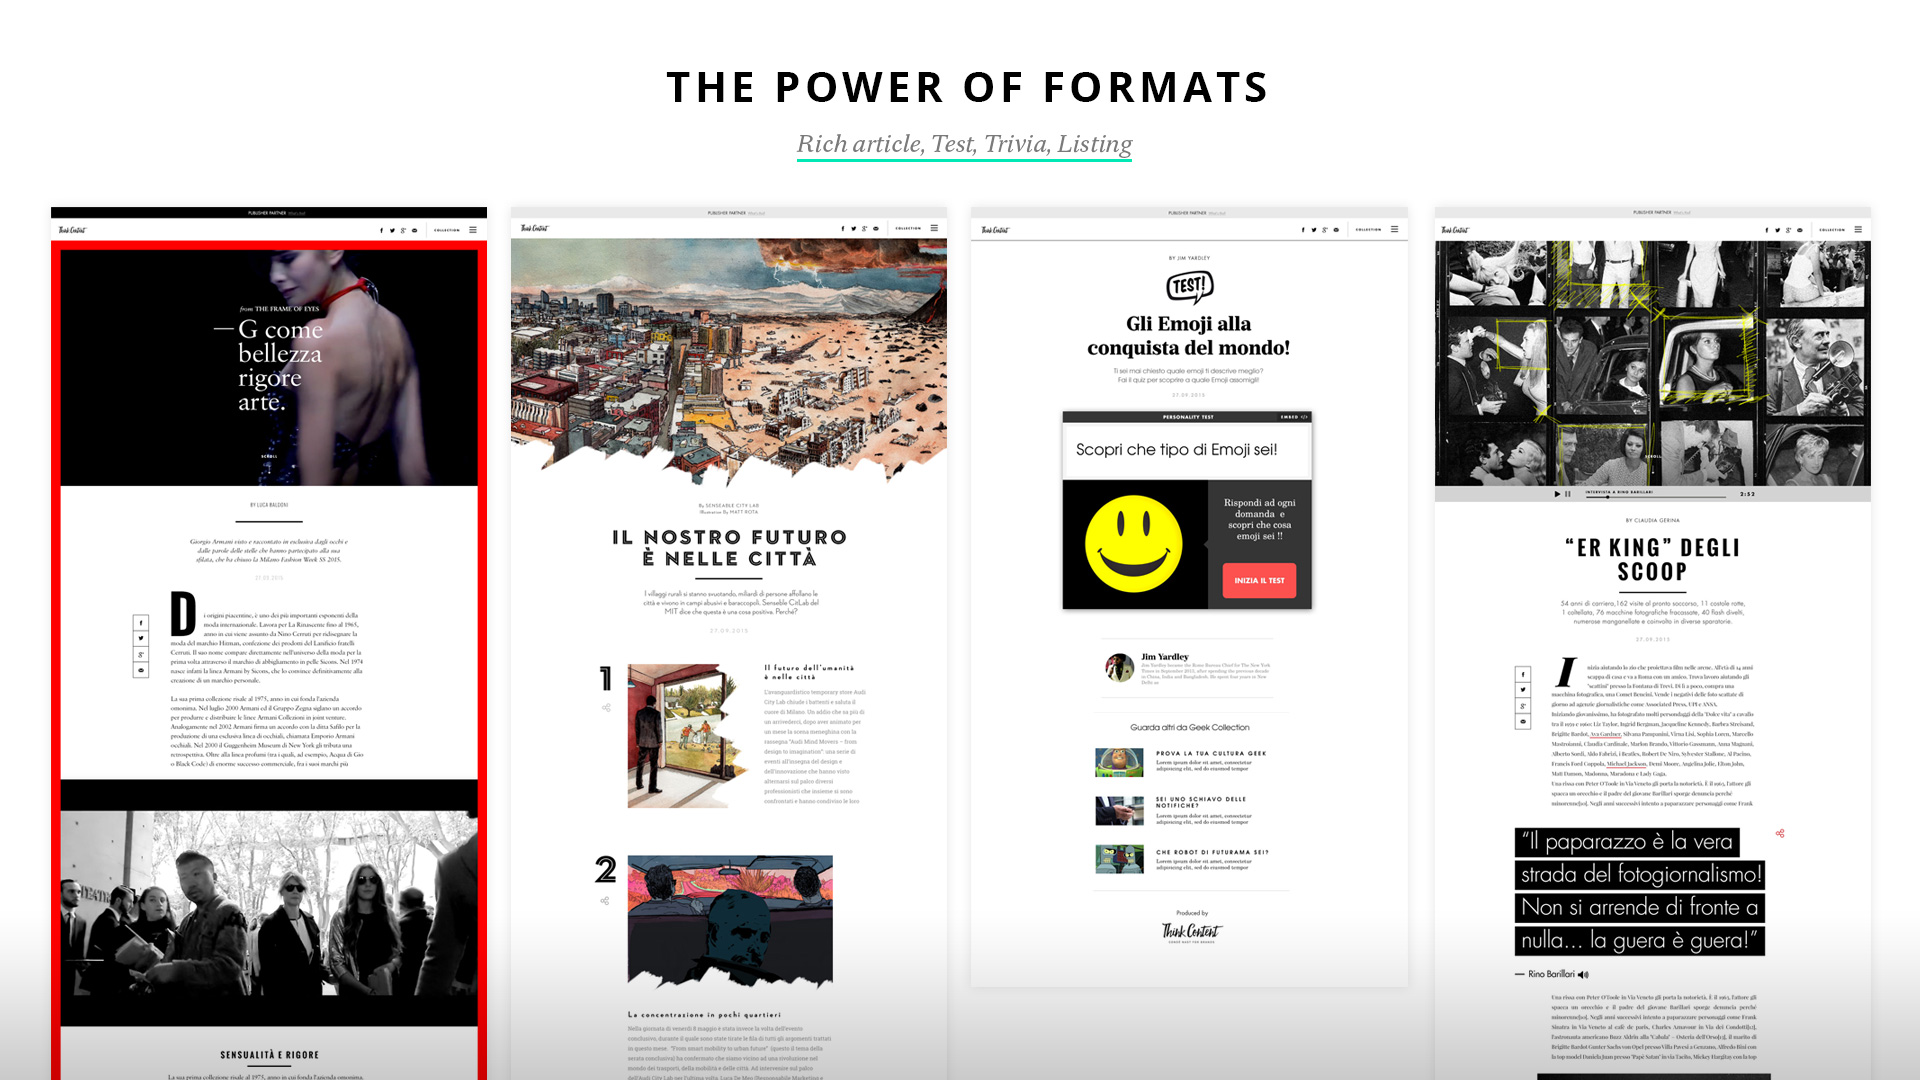 The power of formats